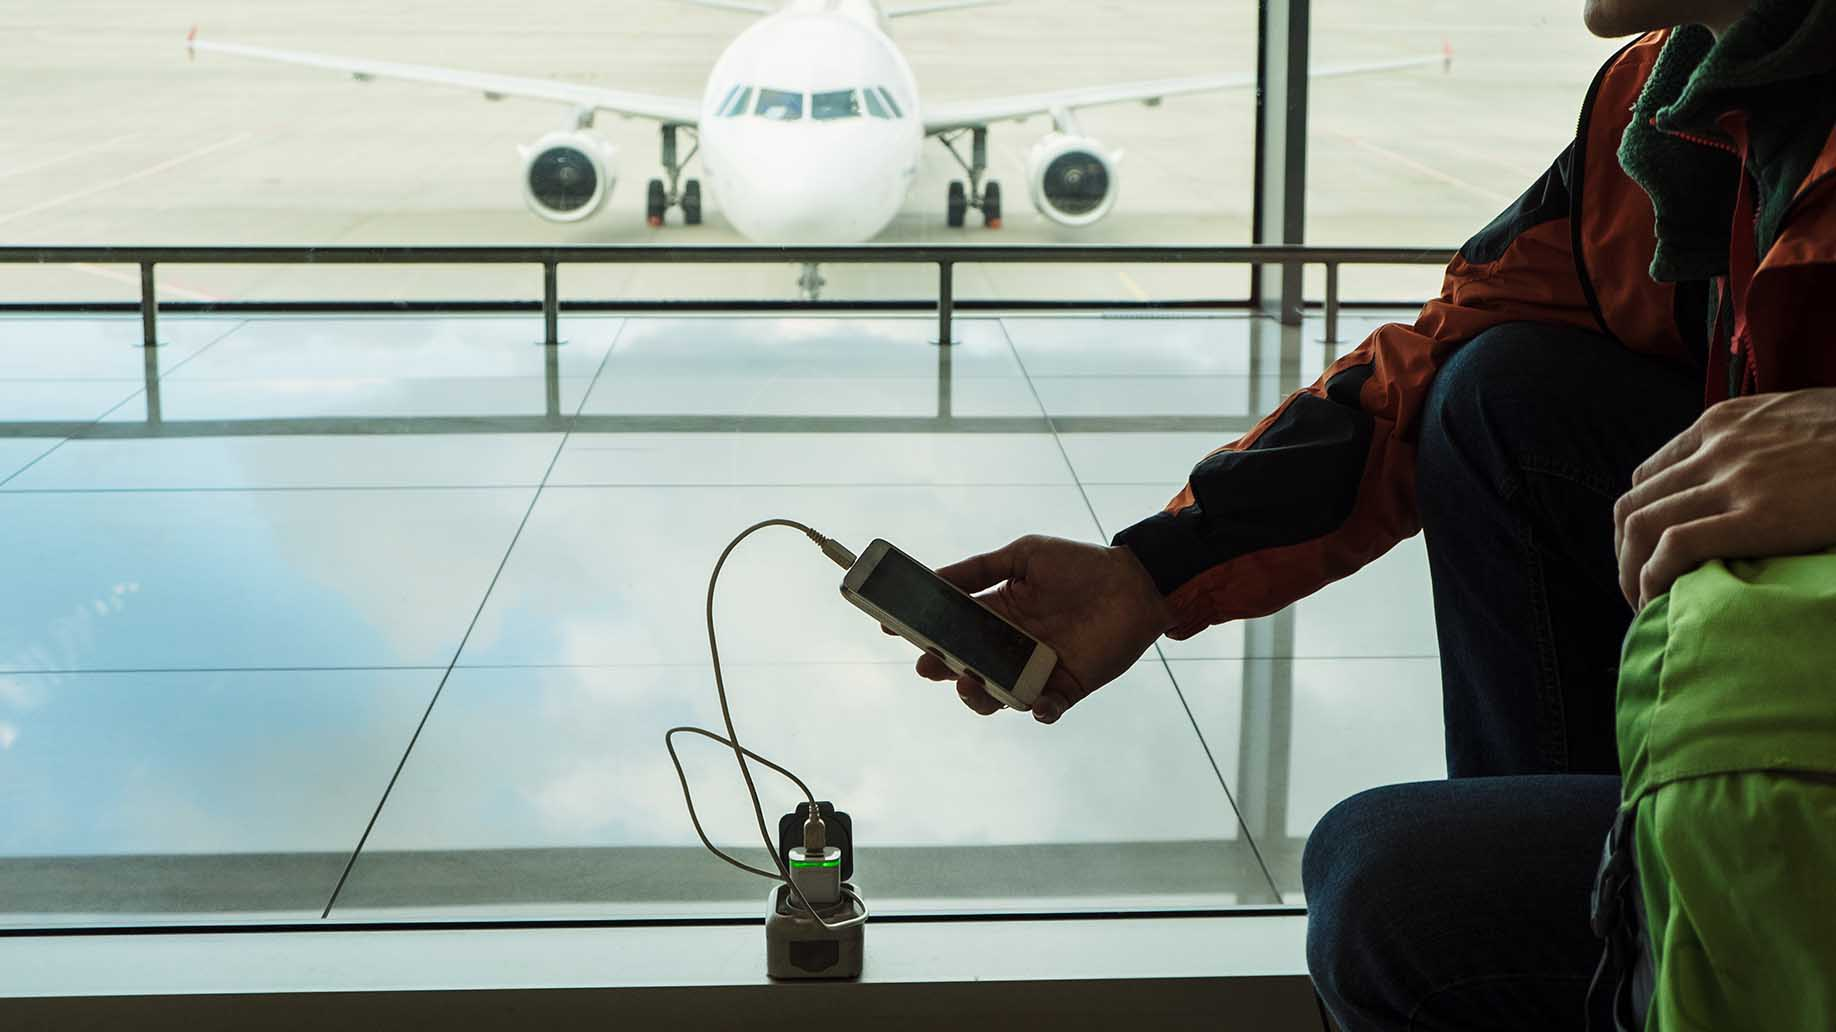 passenger charging mobile device at the lounge of airport terminal